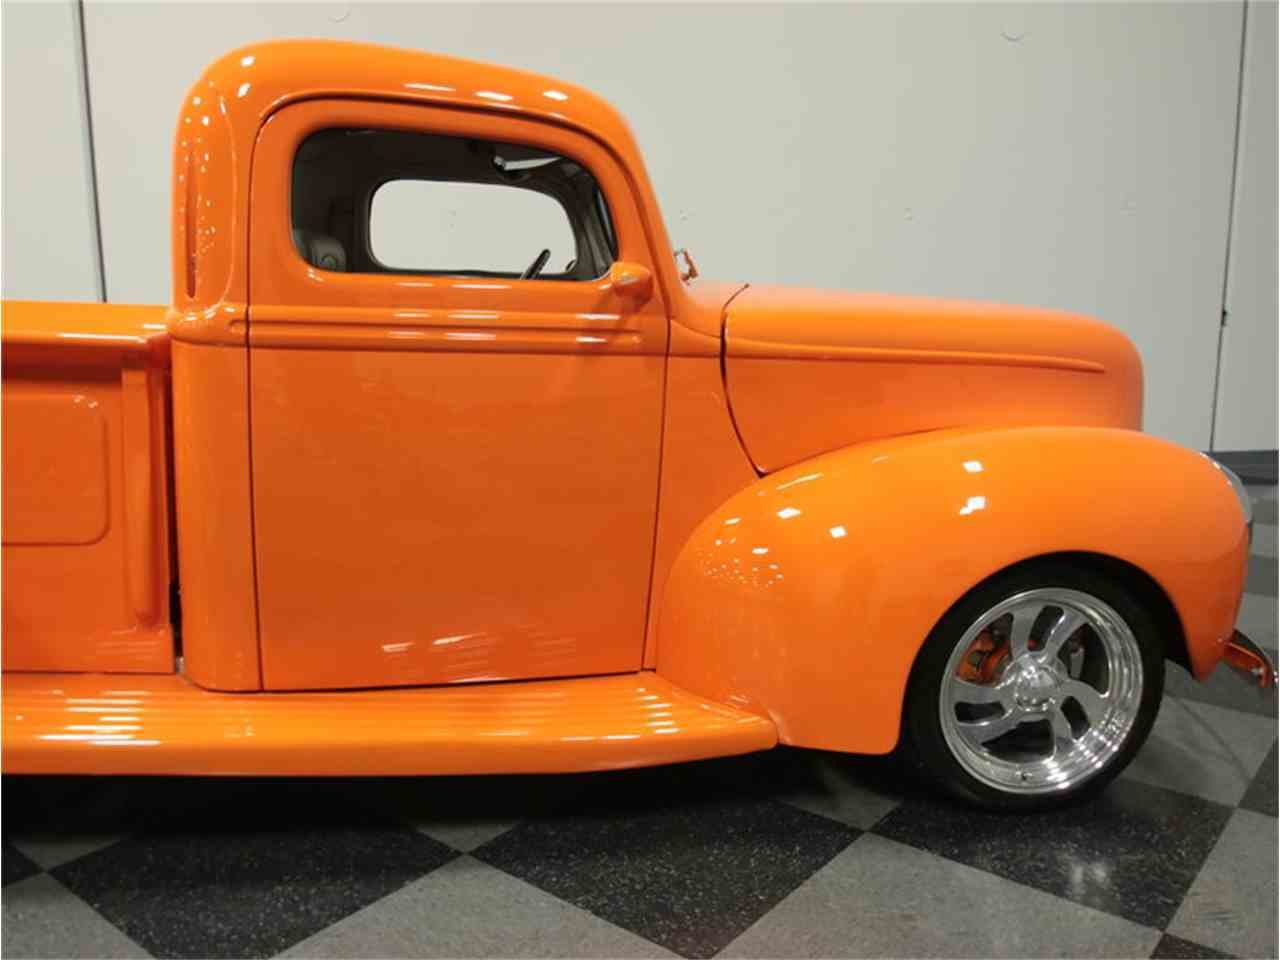 New 1940 Ford Pickup For Sale Classiccars Com Cc 795310 On This Month Original 1024 x 768